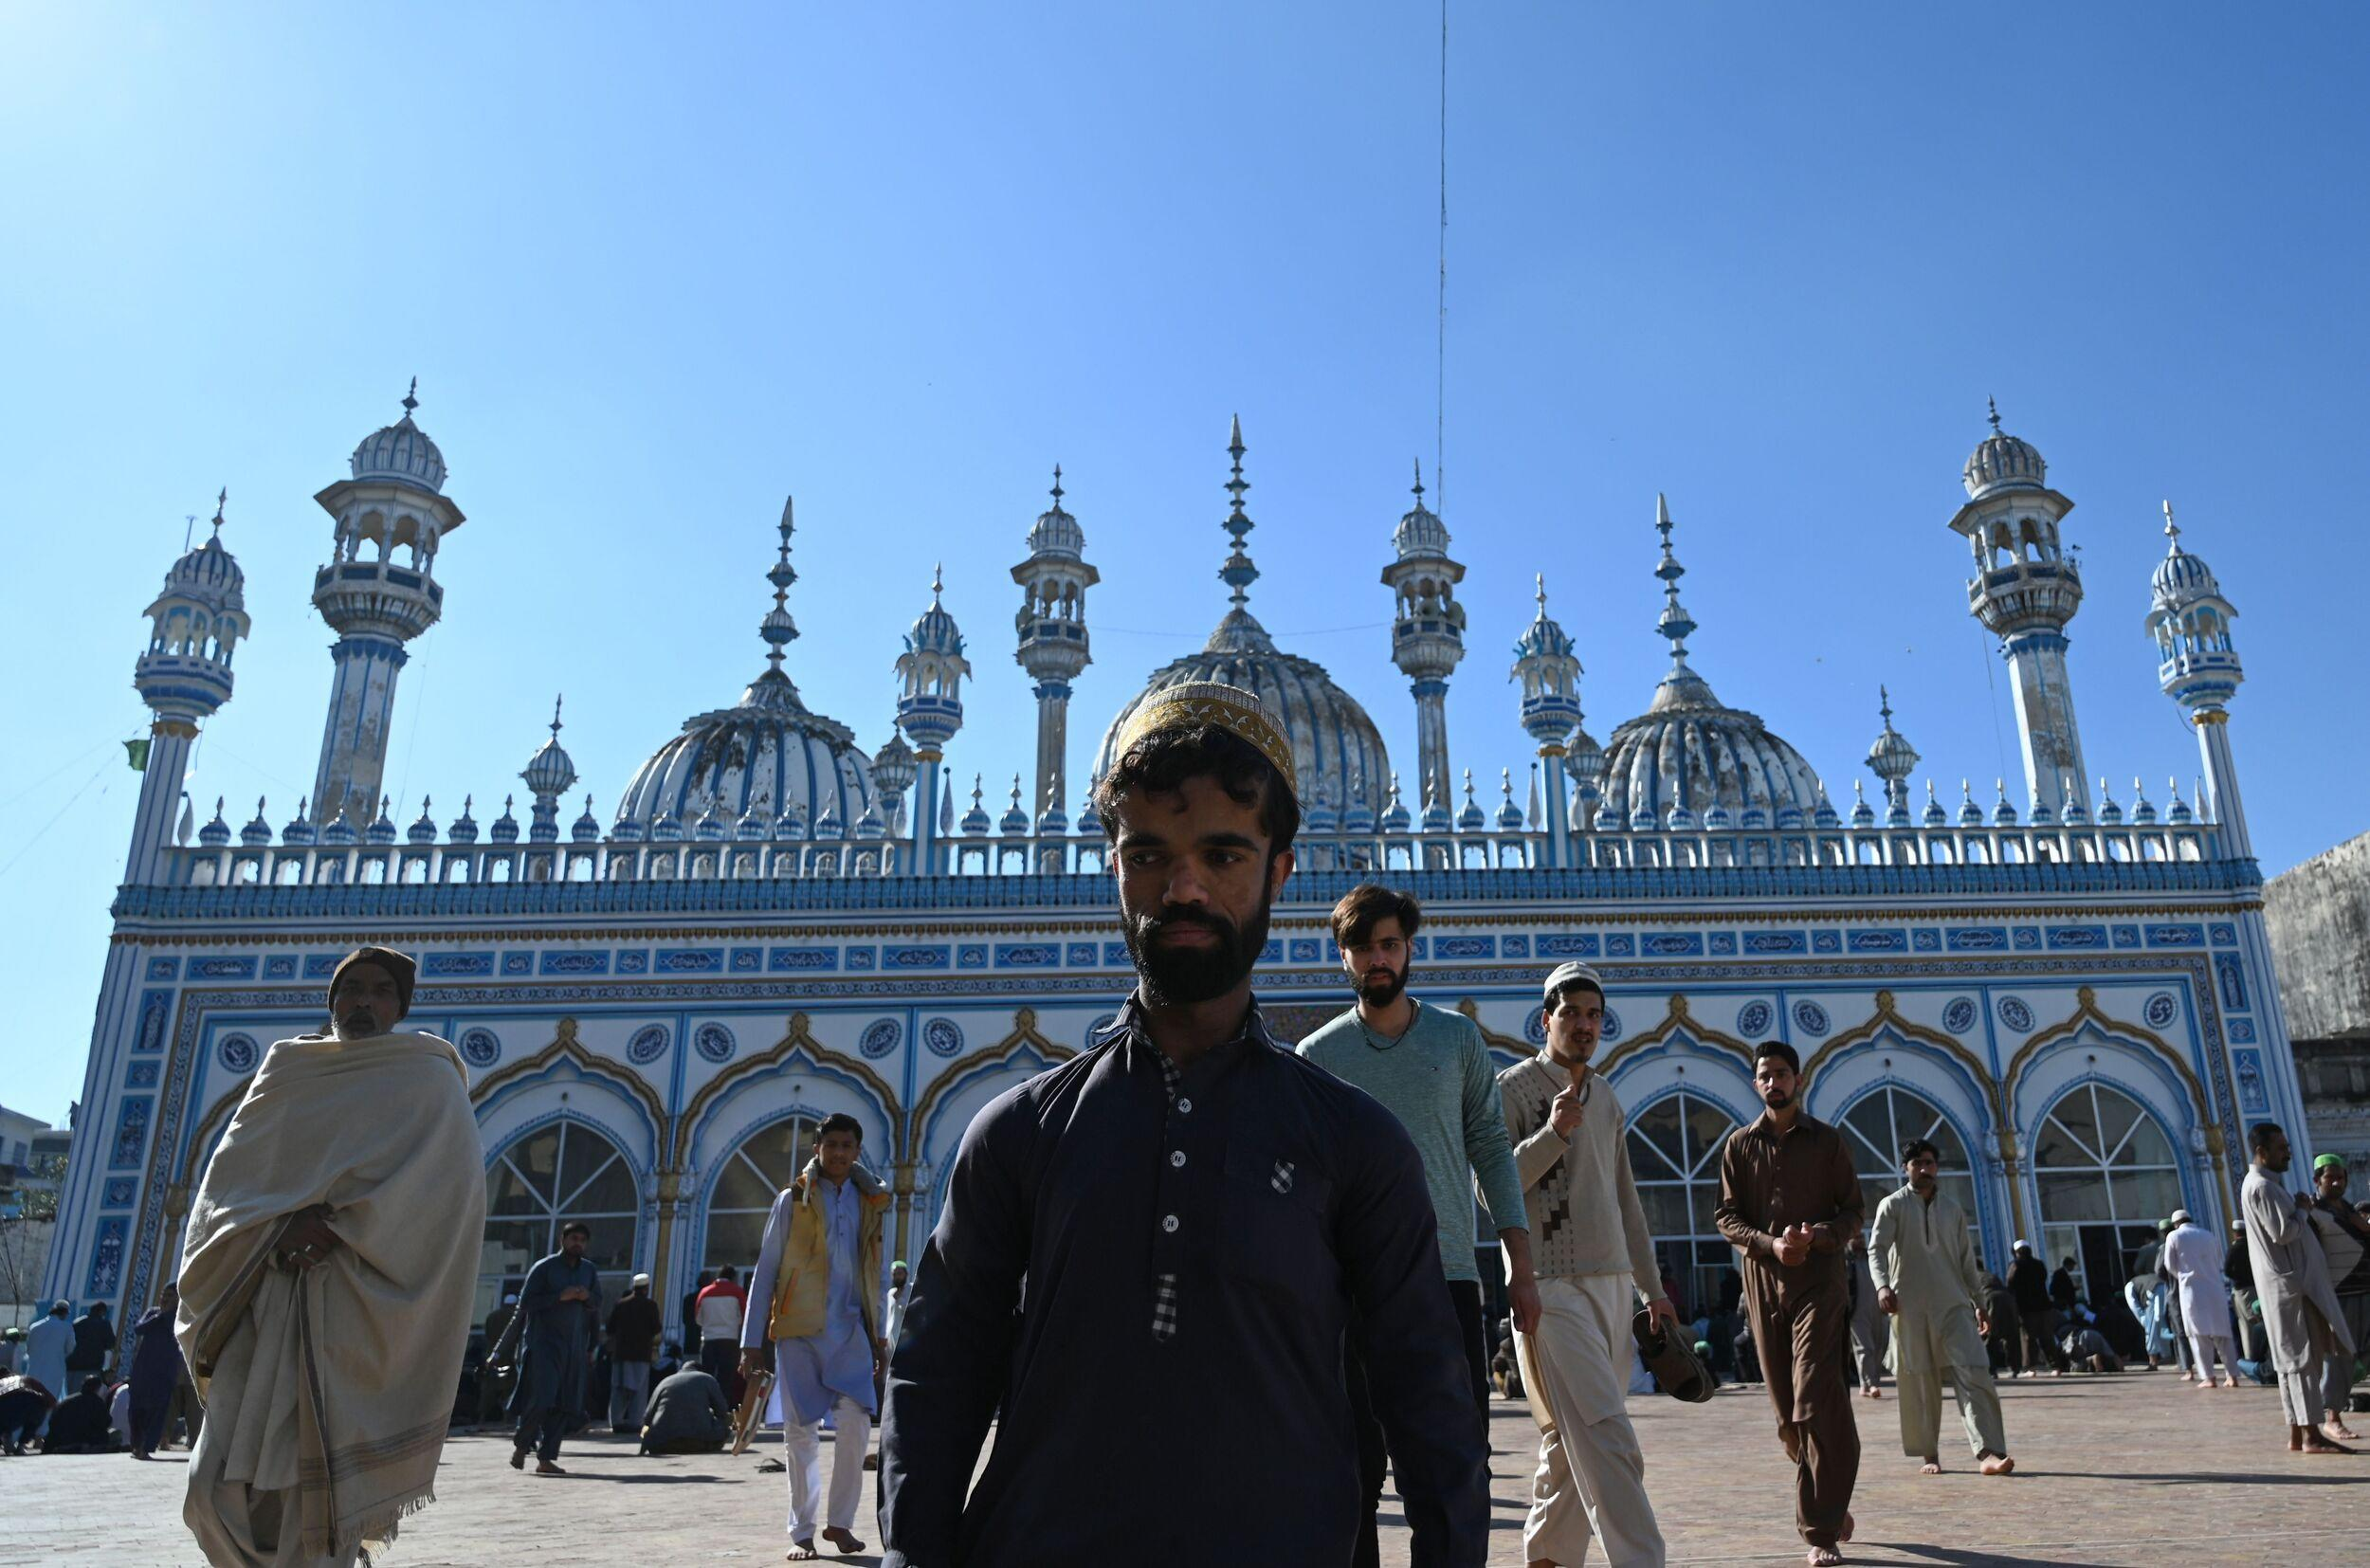 In this picture taken on February 22, 2019, Rozi Khan (C), a 25-year-old Pakistani waiter who resembles US actor Peter Dinklage, leaving a mosque after Friday prayers in Rawalpindi. - Rozi Khan had never heard of the Game of Thrones -- or its hugely popular character Tyrion Lannister -- until his striking resemblance to the dwarf anti-hero got heads turning at home. (Photo by AAMIR QURESHI / AFP) / To go with PAKISTAN-LIFESTYLE-TELEVISION-ENTERTAINMENT        (Photo credit should read AAMIR QURESHI/AFP/Getty Images)